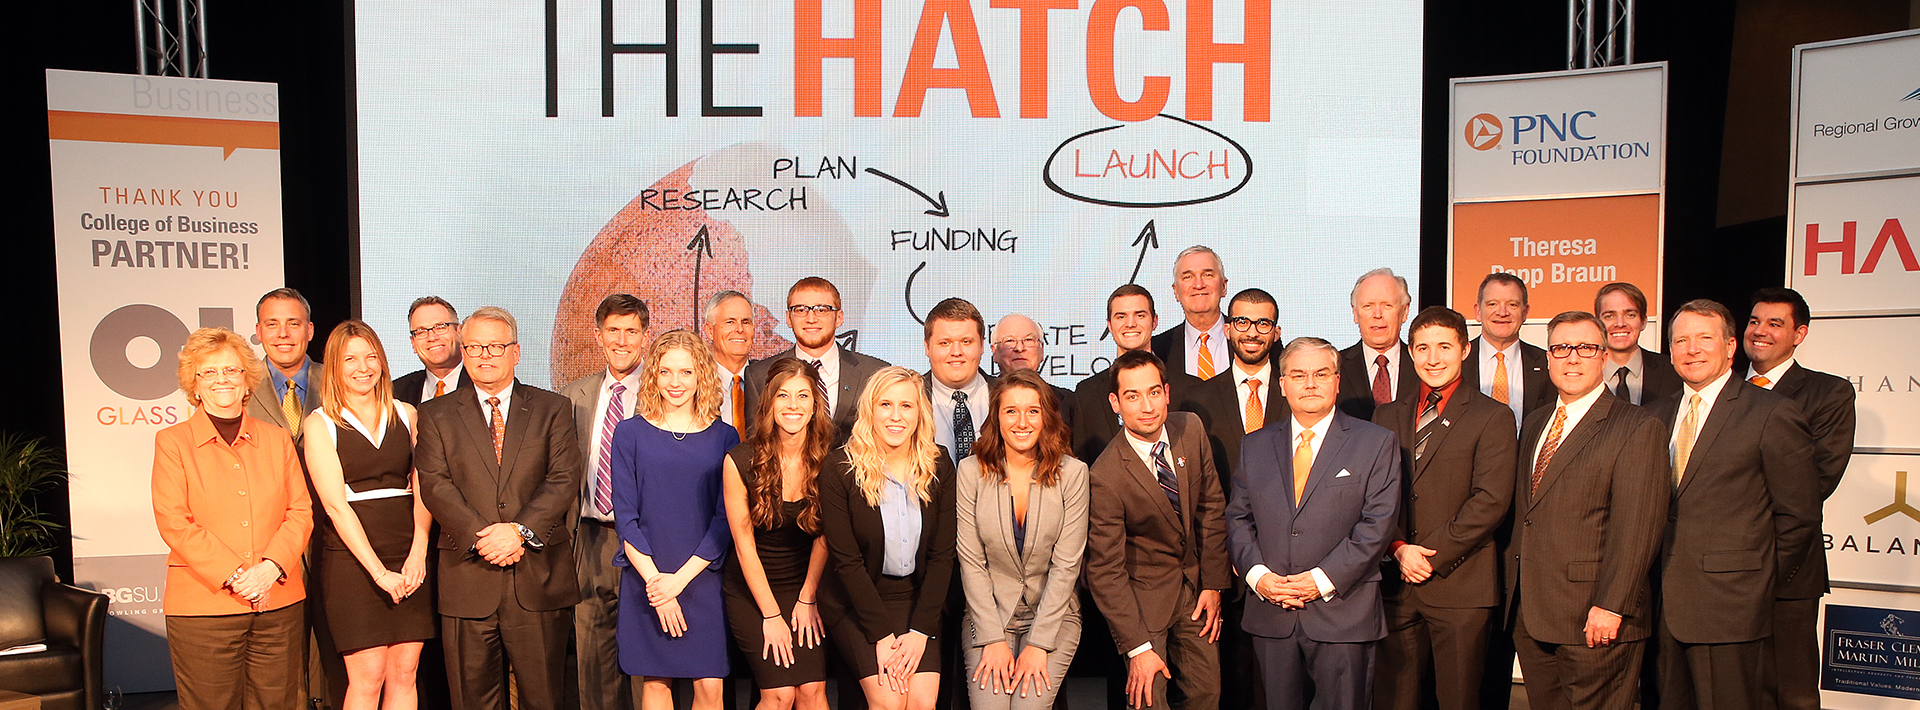 Students 'Hatch' entrepreneurial ideas